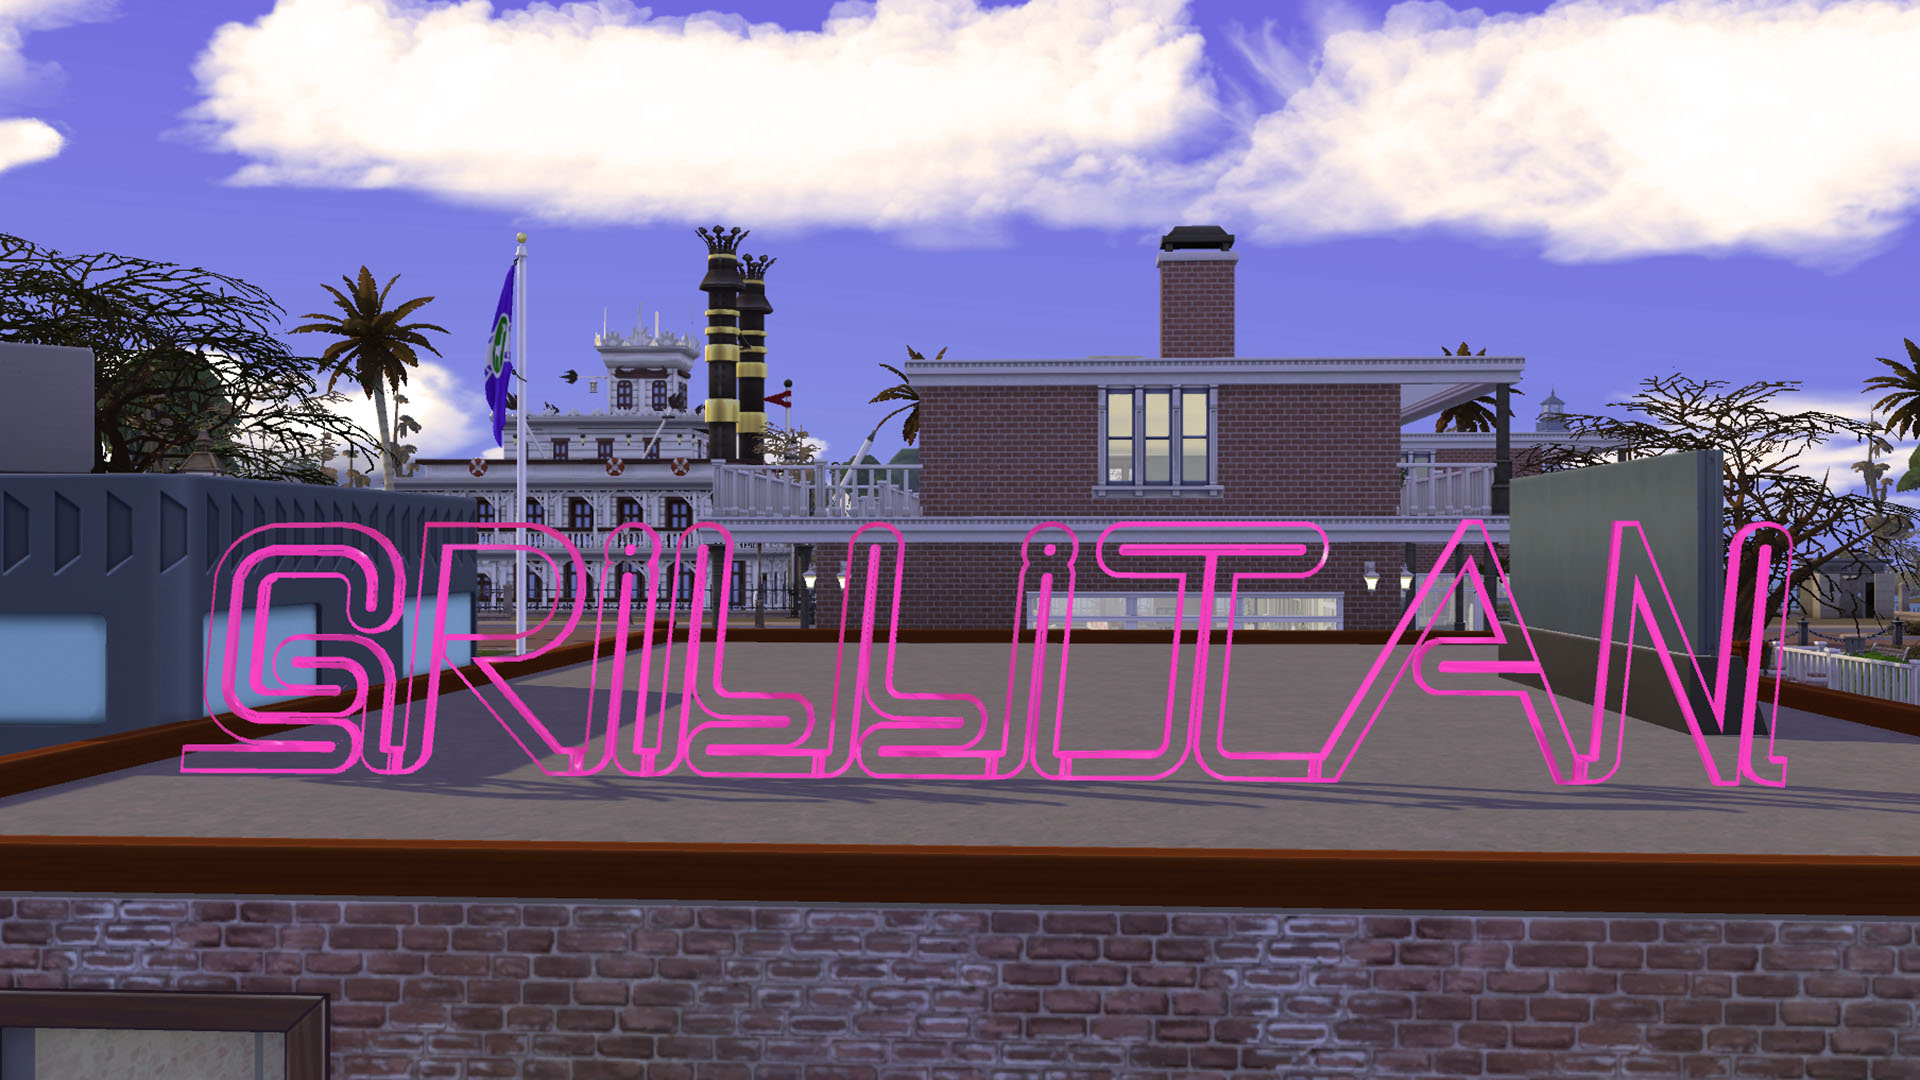 Mod The Sims - Modern Grillitan Diner Sign